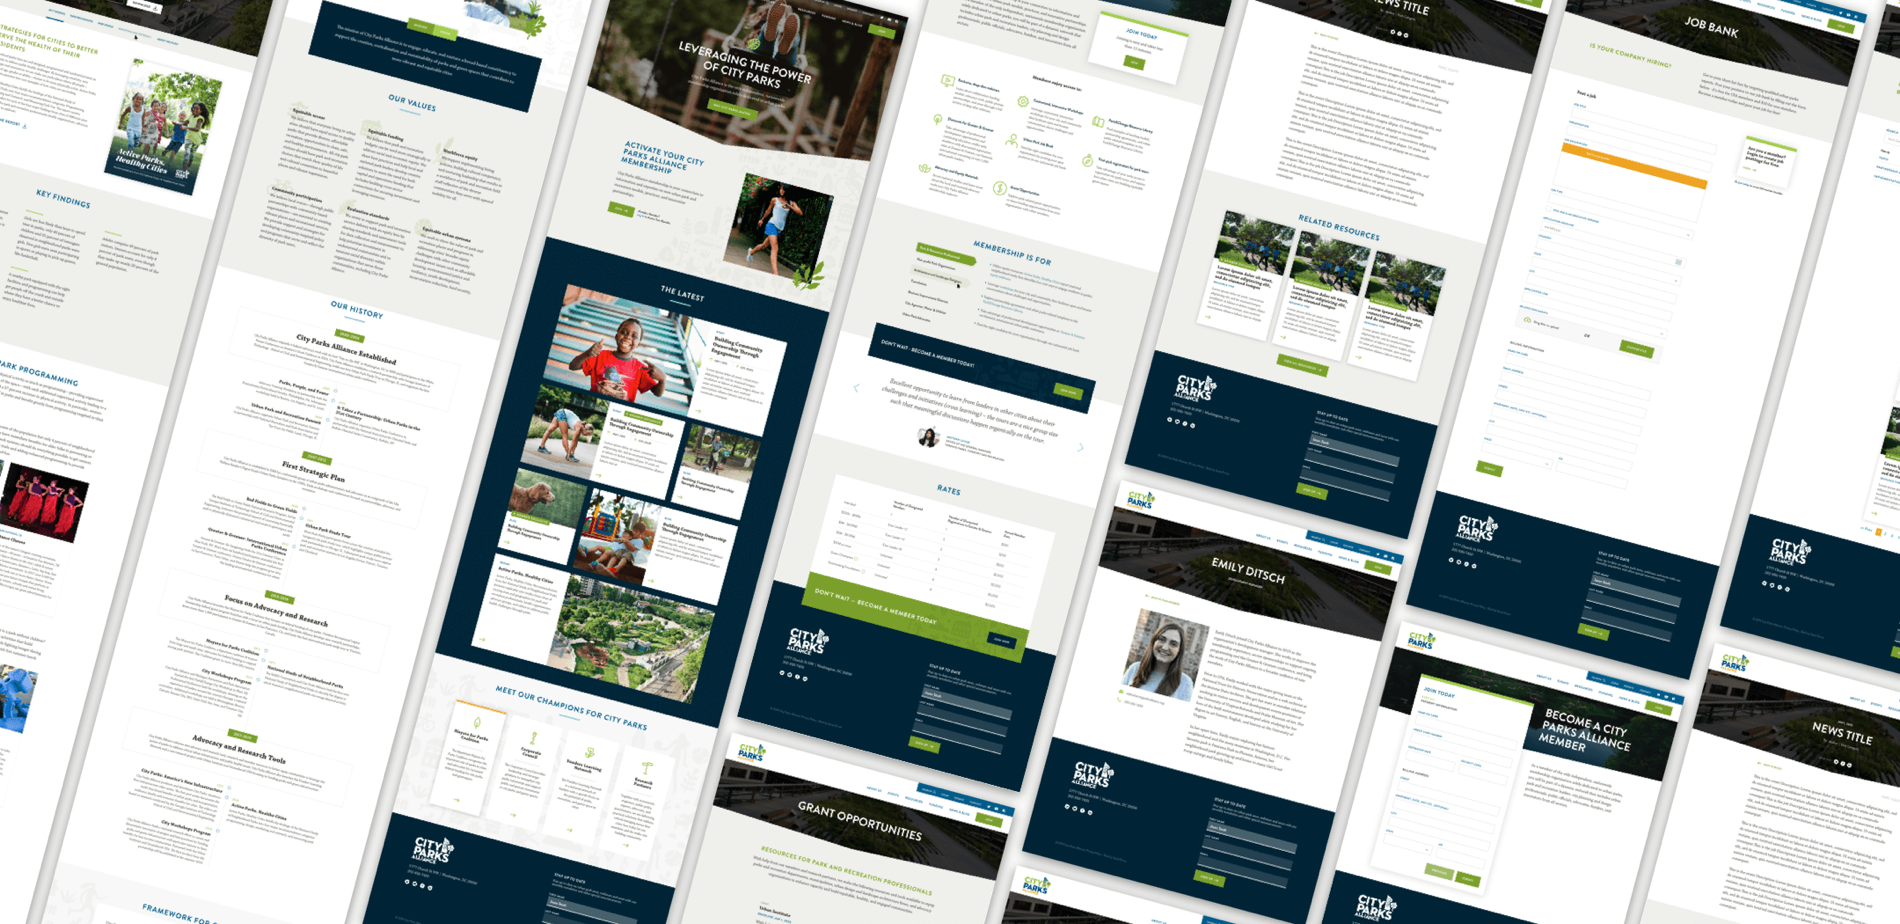 A series of City Parks Alliance screenshots laid out in a grid.